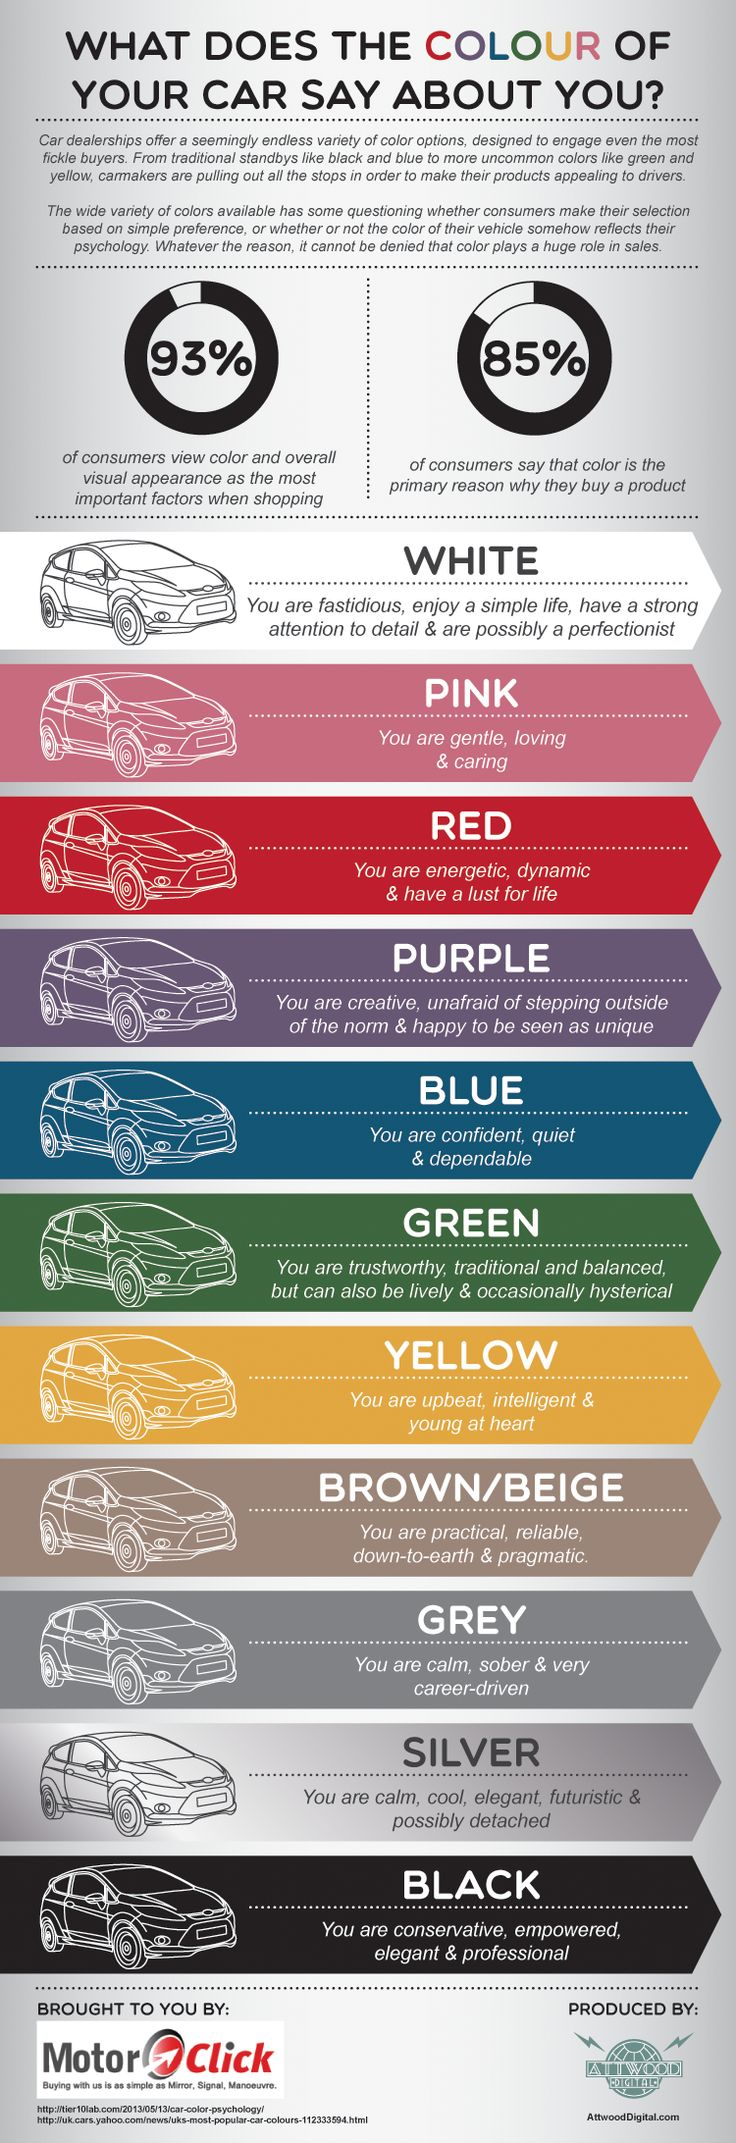 What Does The Colour Of Your Car Say About You? [Infographic] from motorclick.co.uk